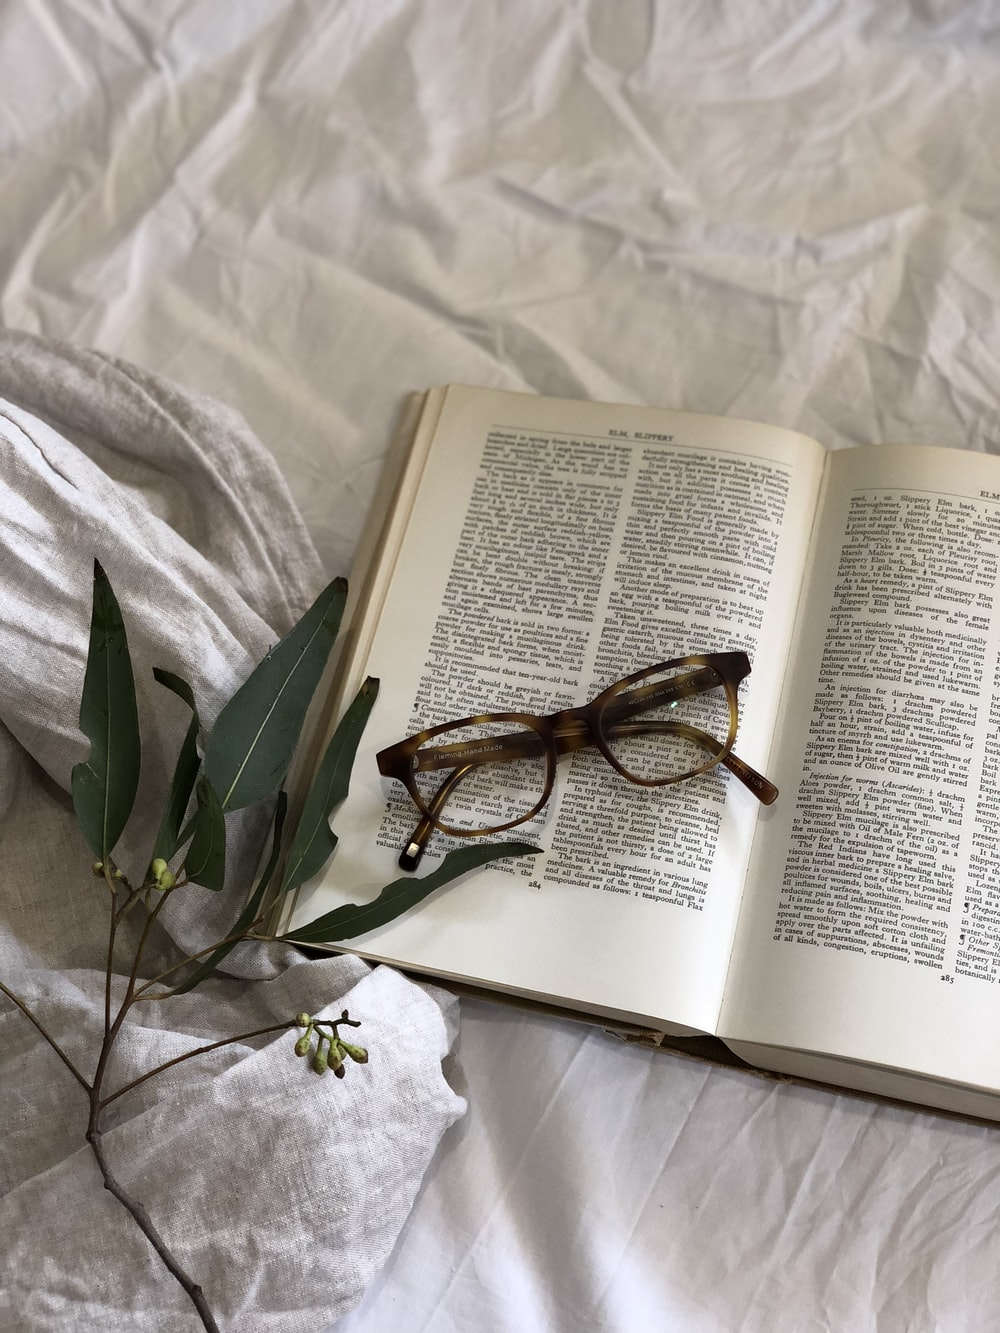 eyeglasses on top of book page beside green leafed plant